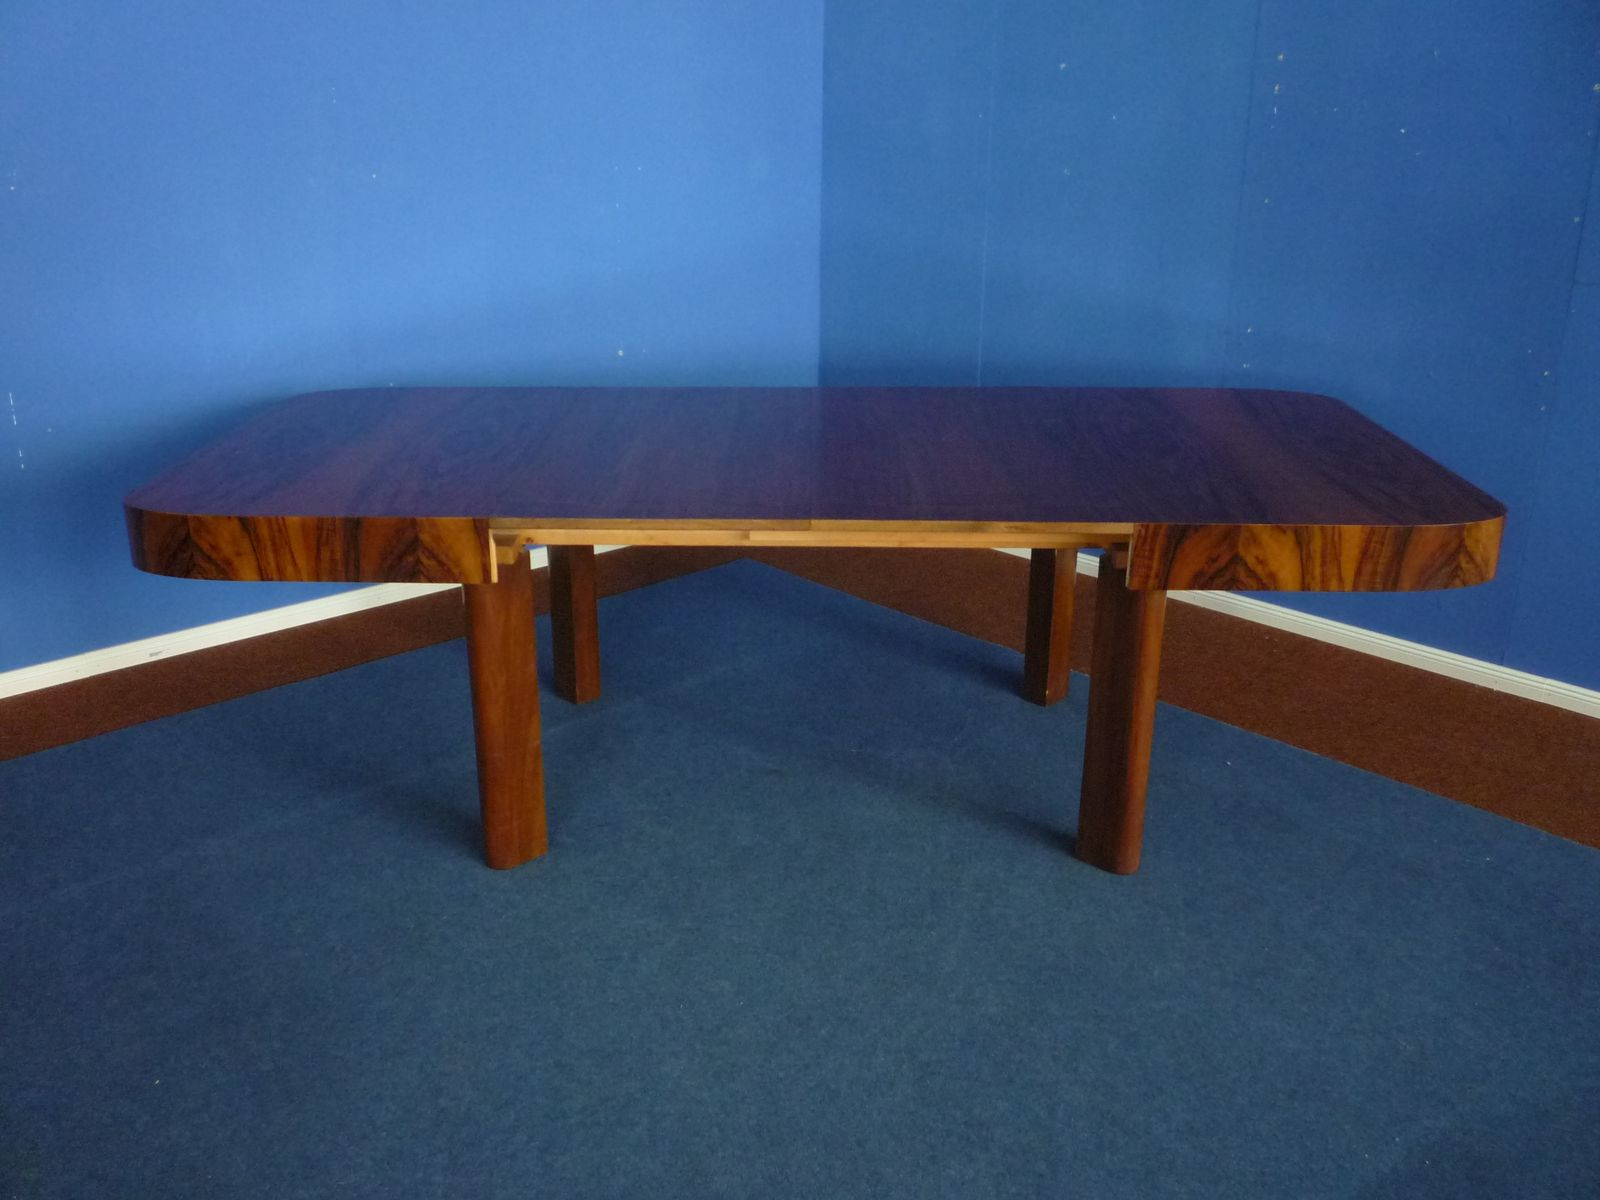 Art Deco Extendable German Walnut Dining Table 1930s for sale at